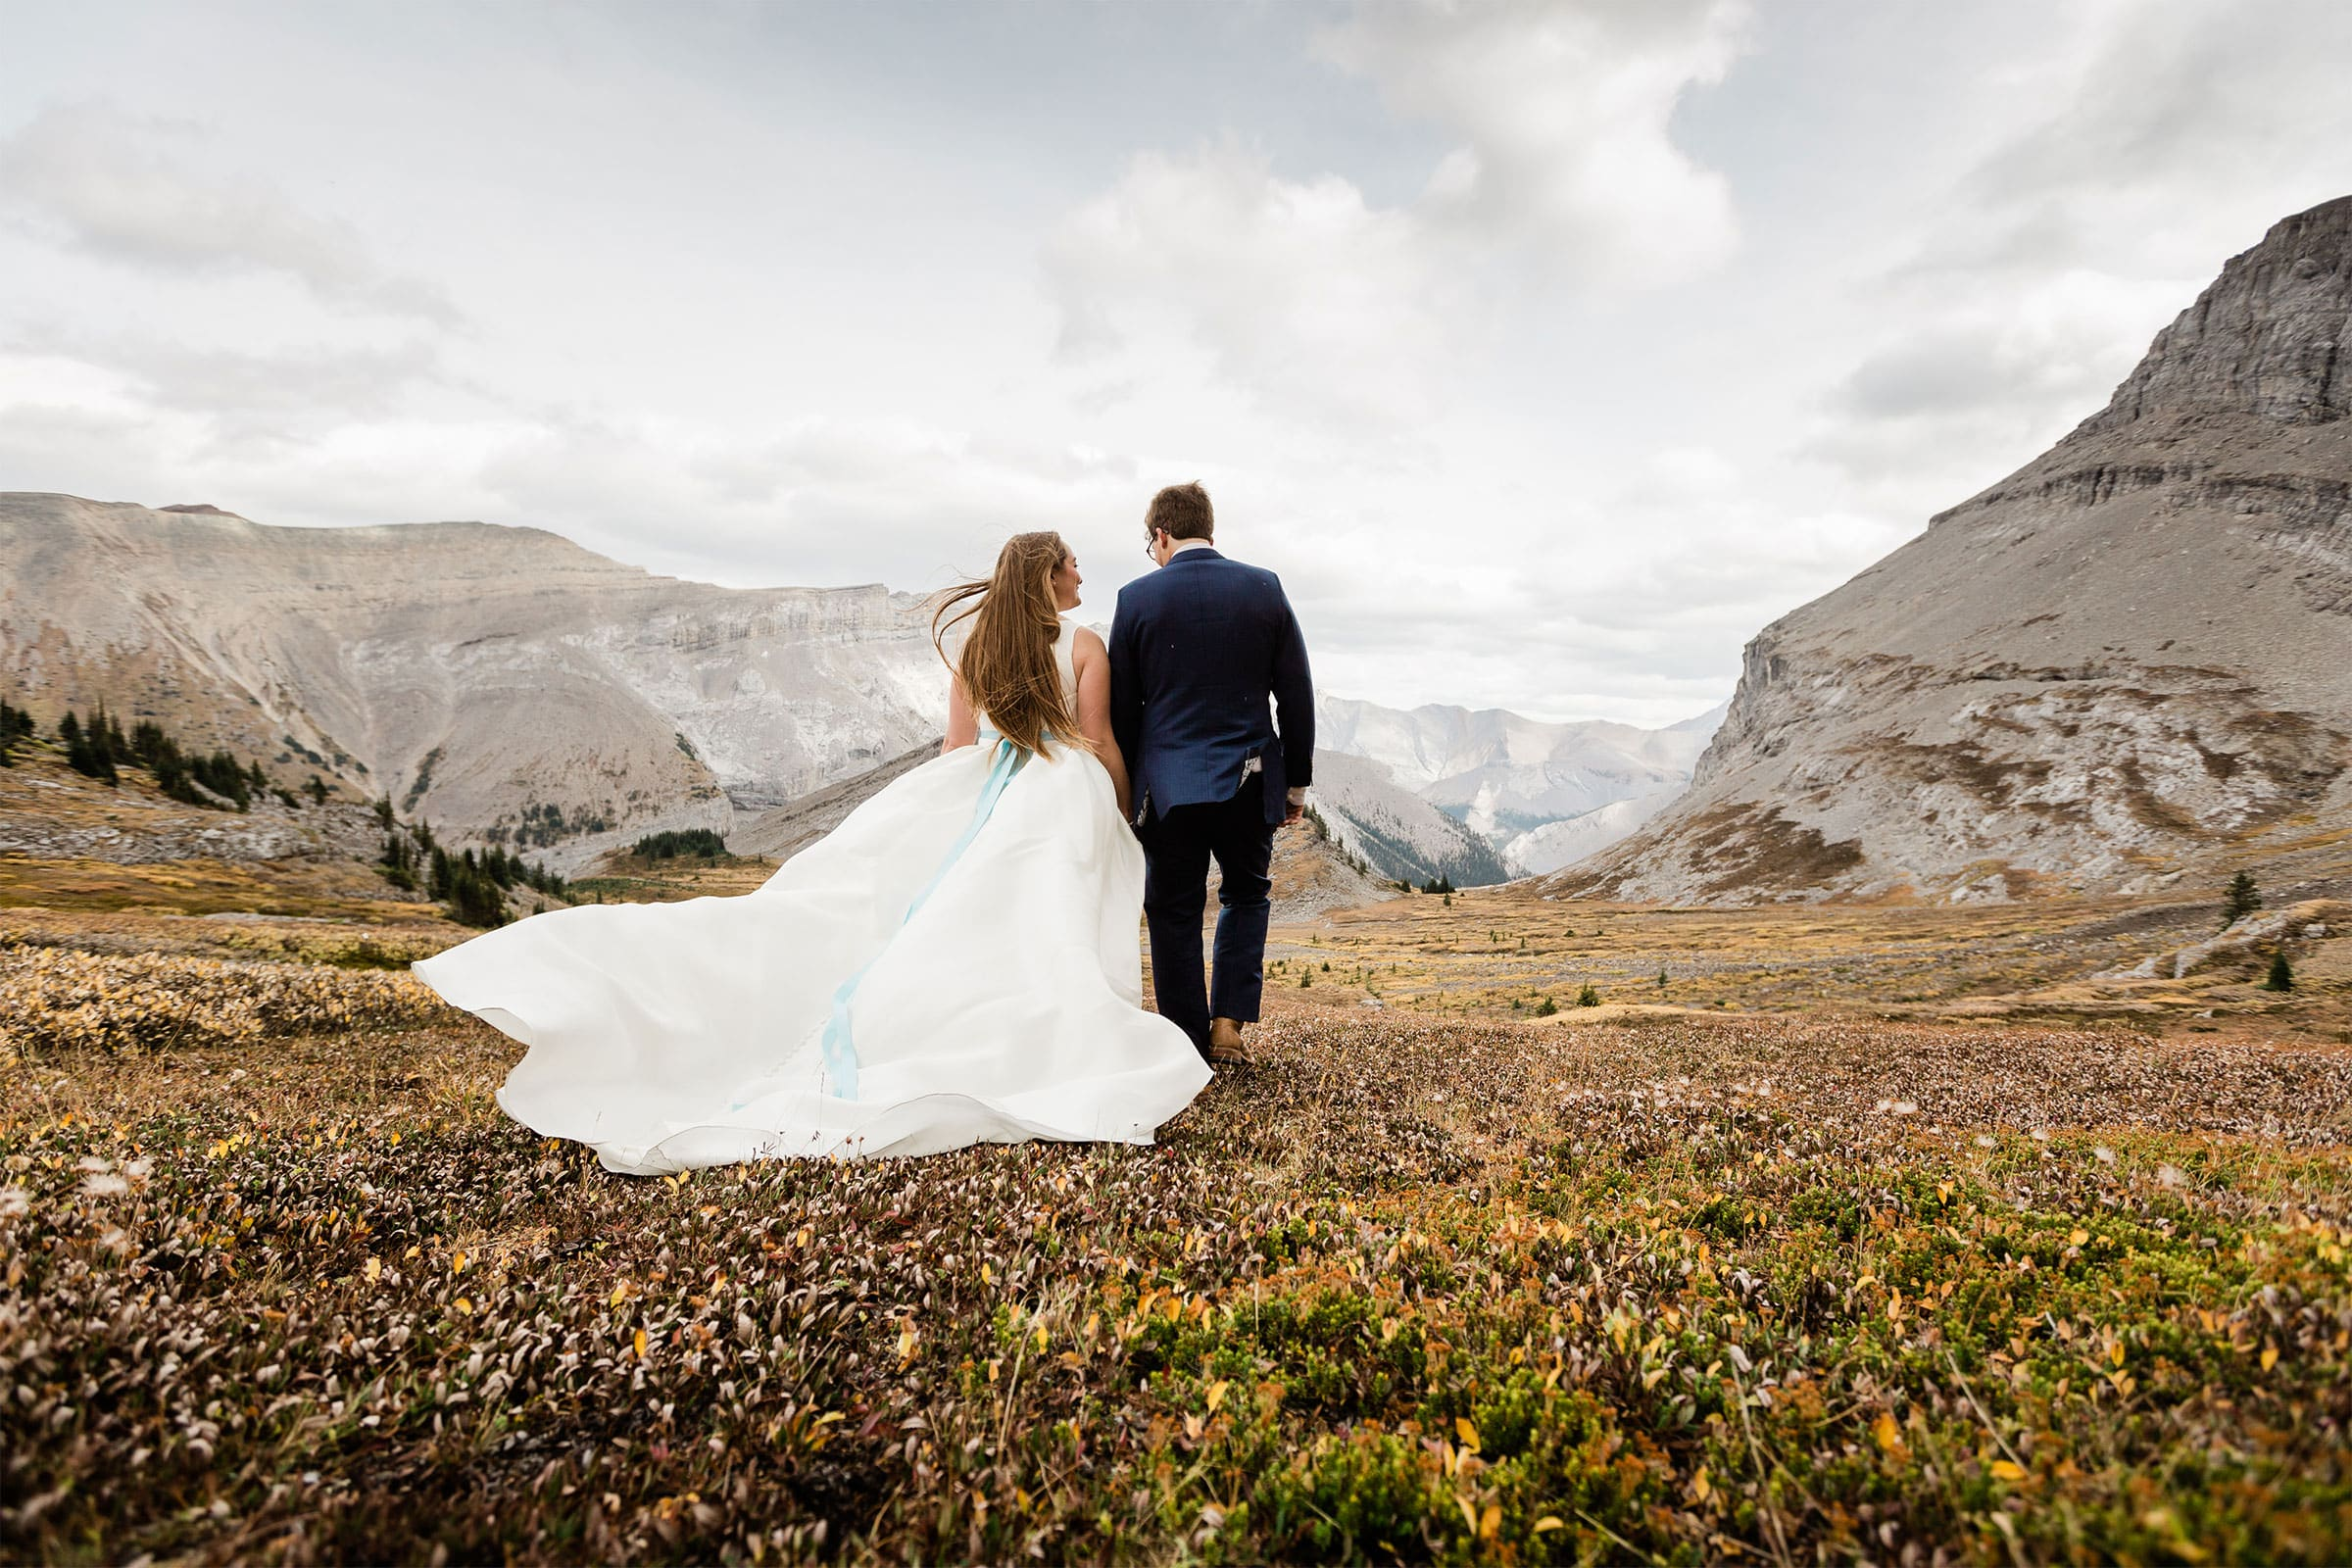 elopement bride groom walking hand in hand towards Canmore after getting married at the top of a Canmore mountain